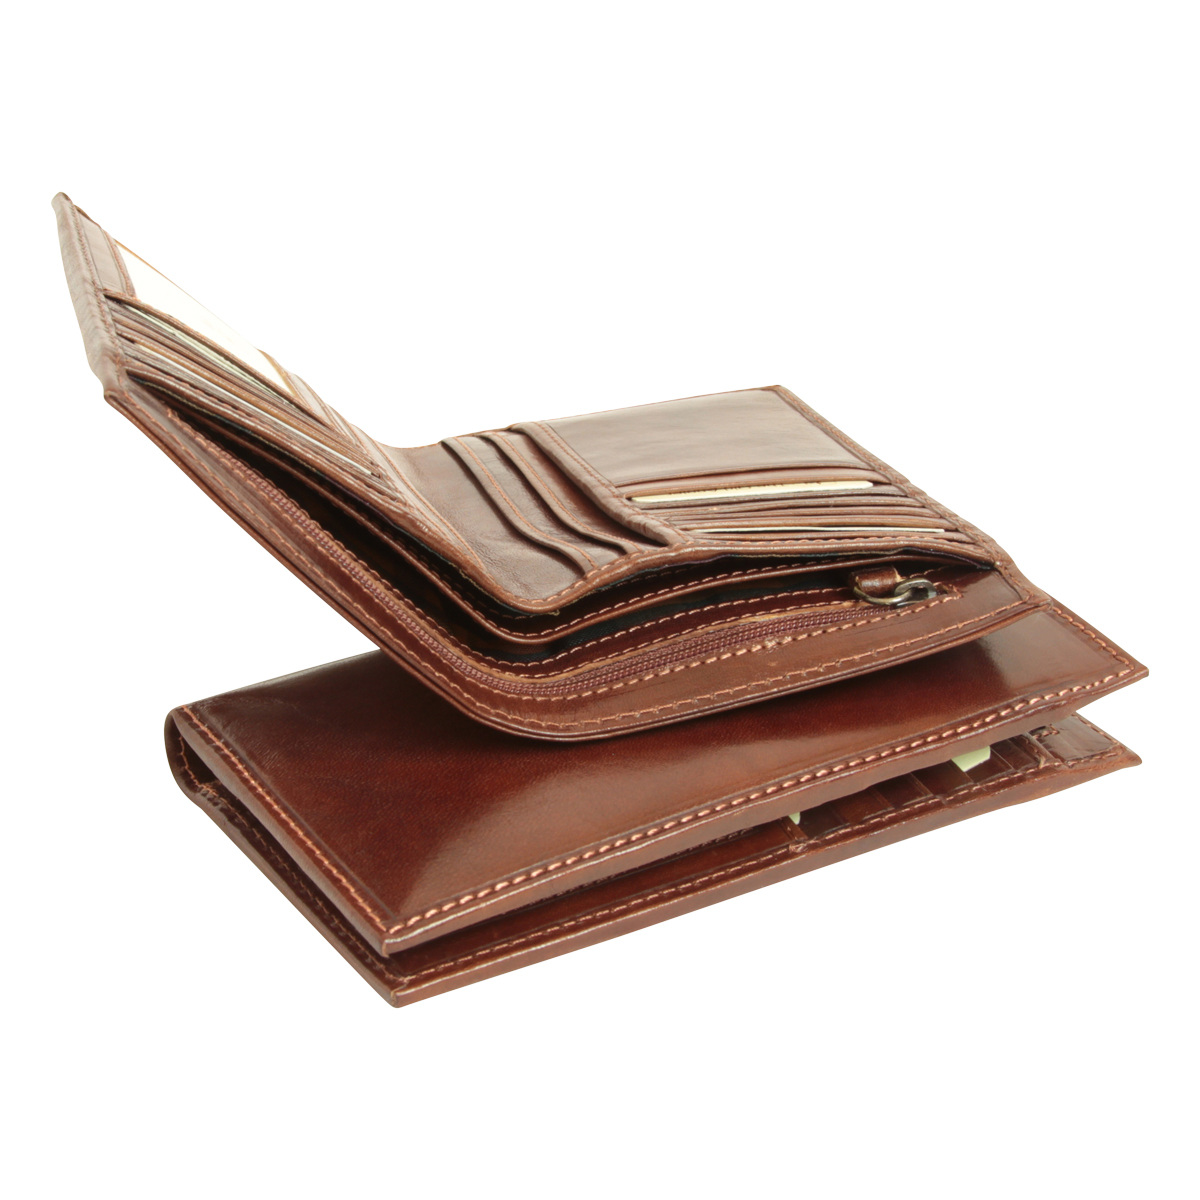 Leather wallet with zip closure - Brown | 550305MA | EURO | Old Angler Firenze